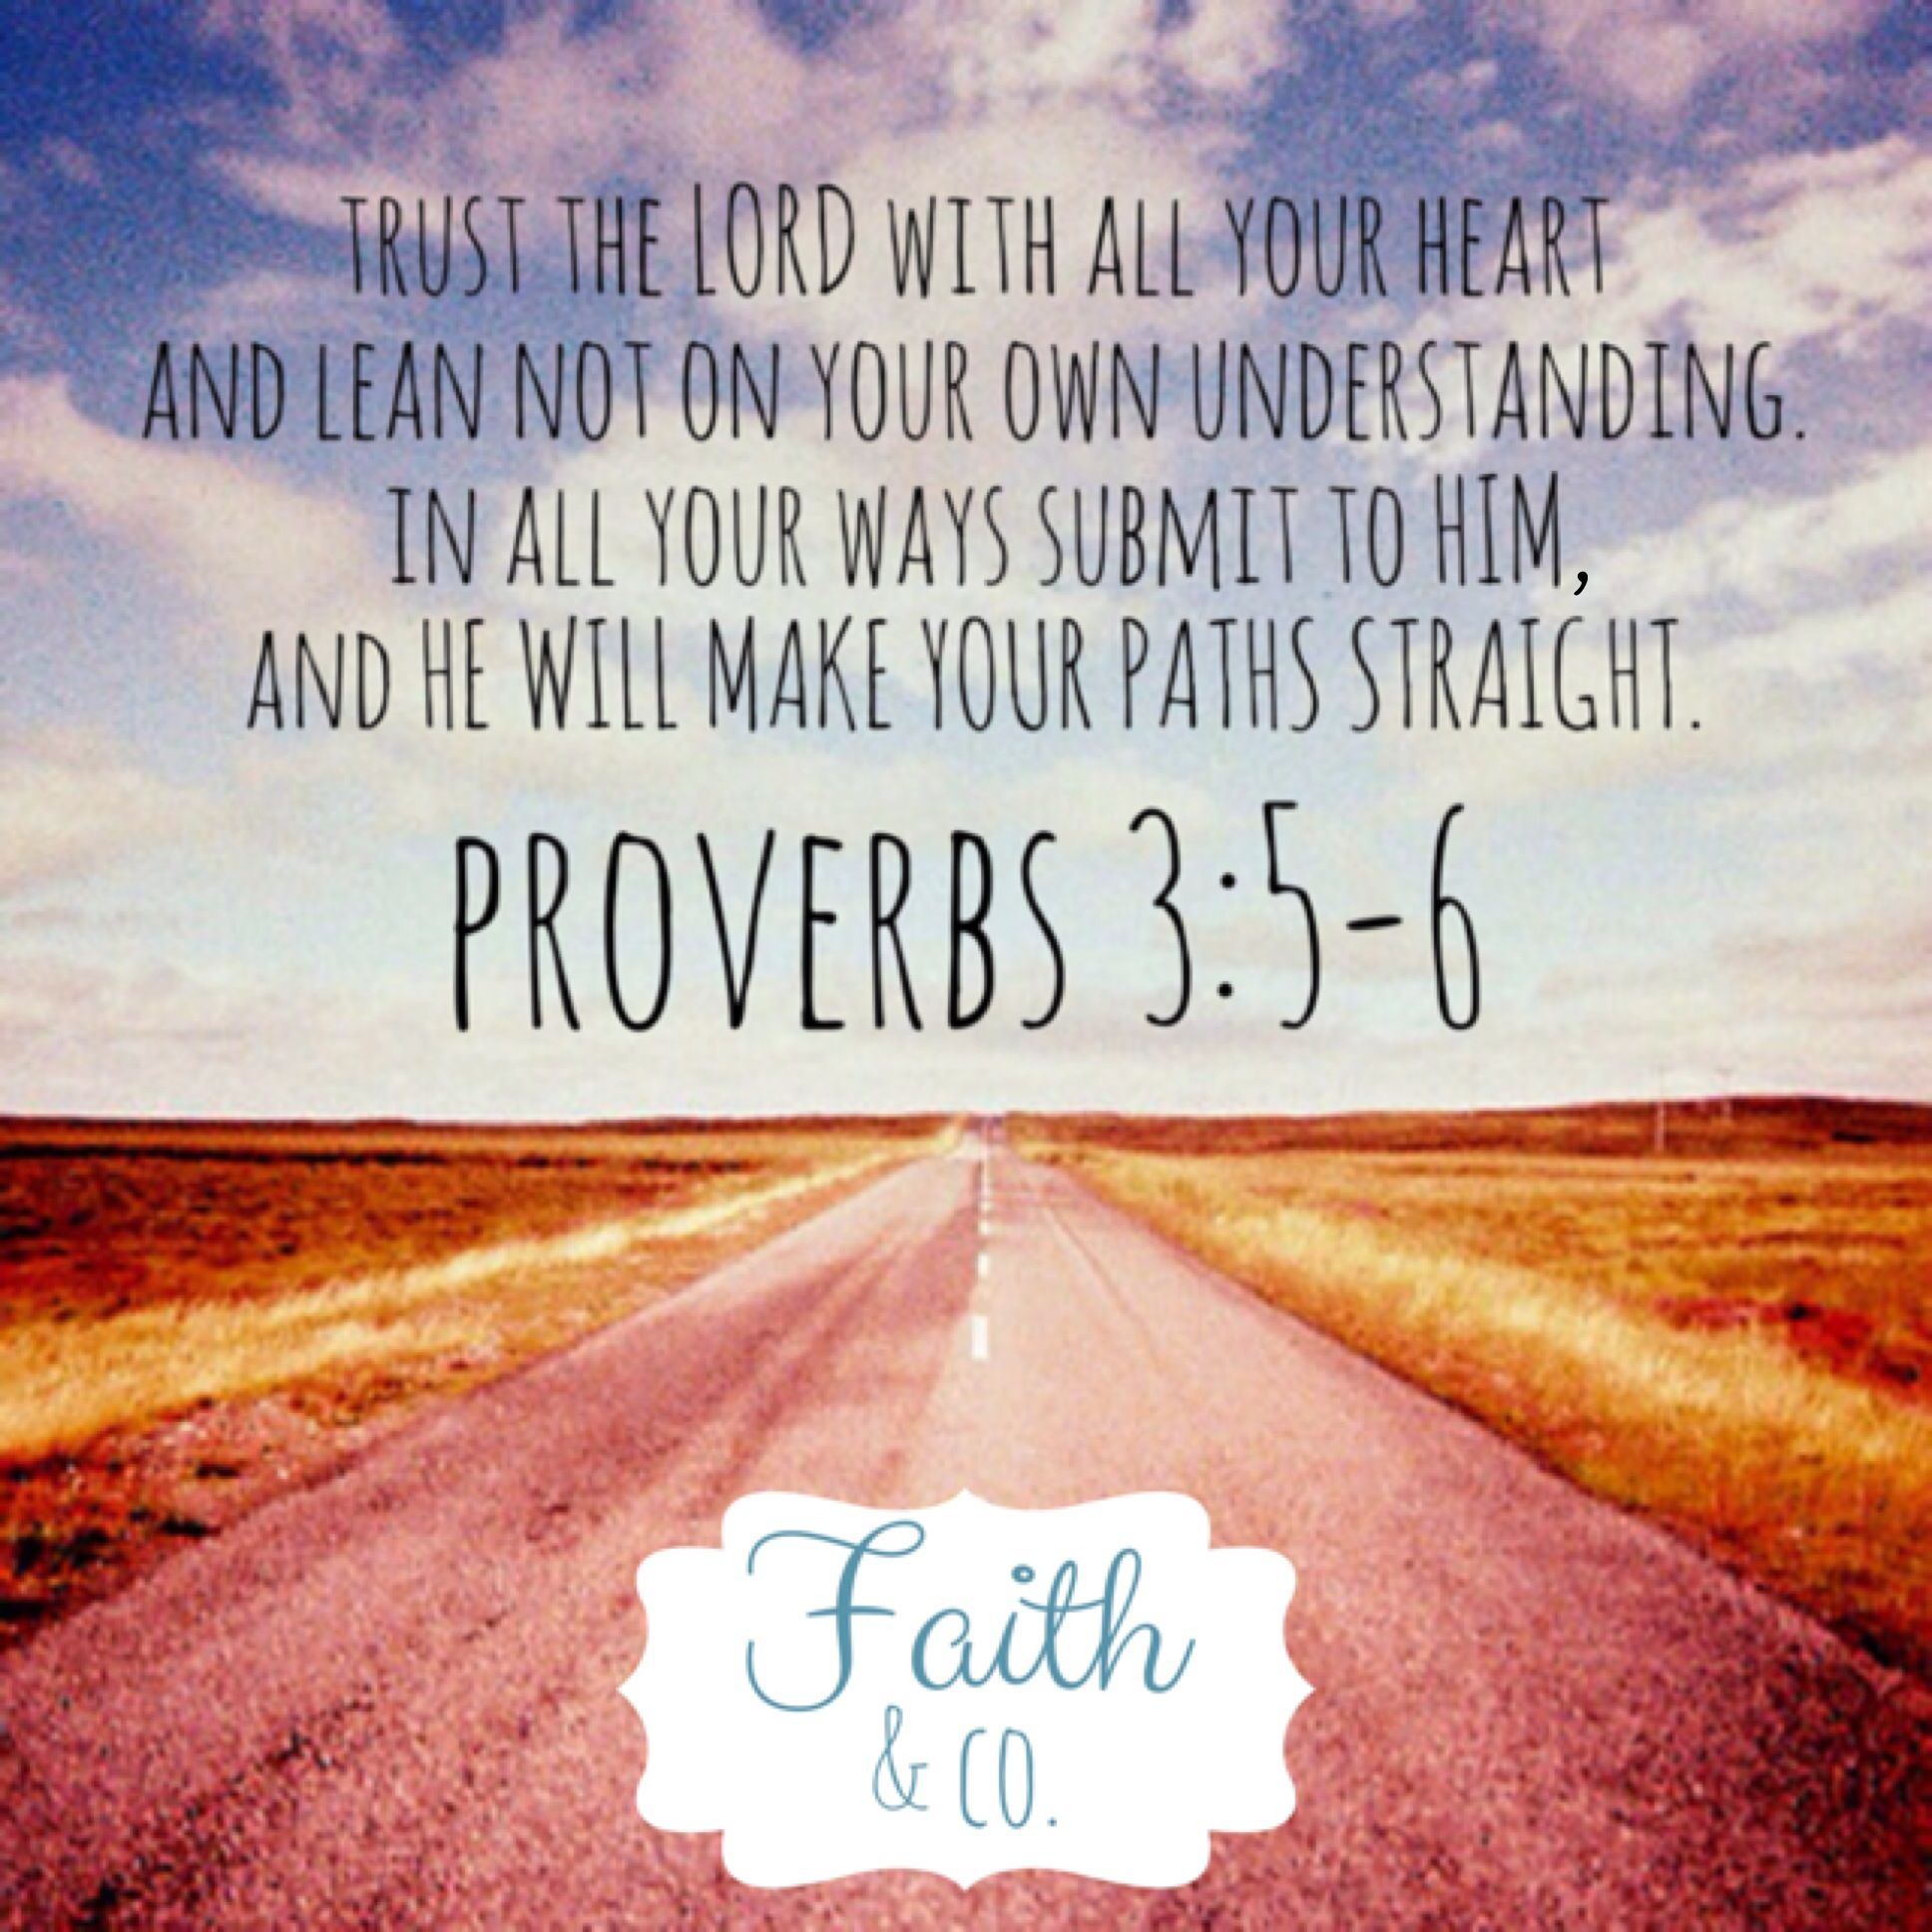 Bible Quotes About Faith Extraordinary Images For  Bible Verses About Strength And Faith In Hard Times . Decorating Design